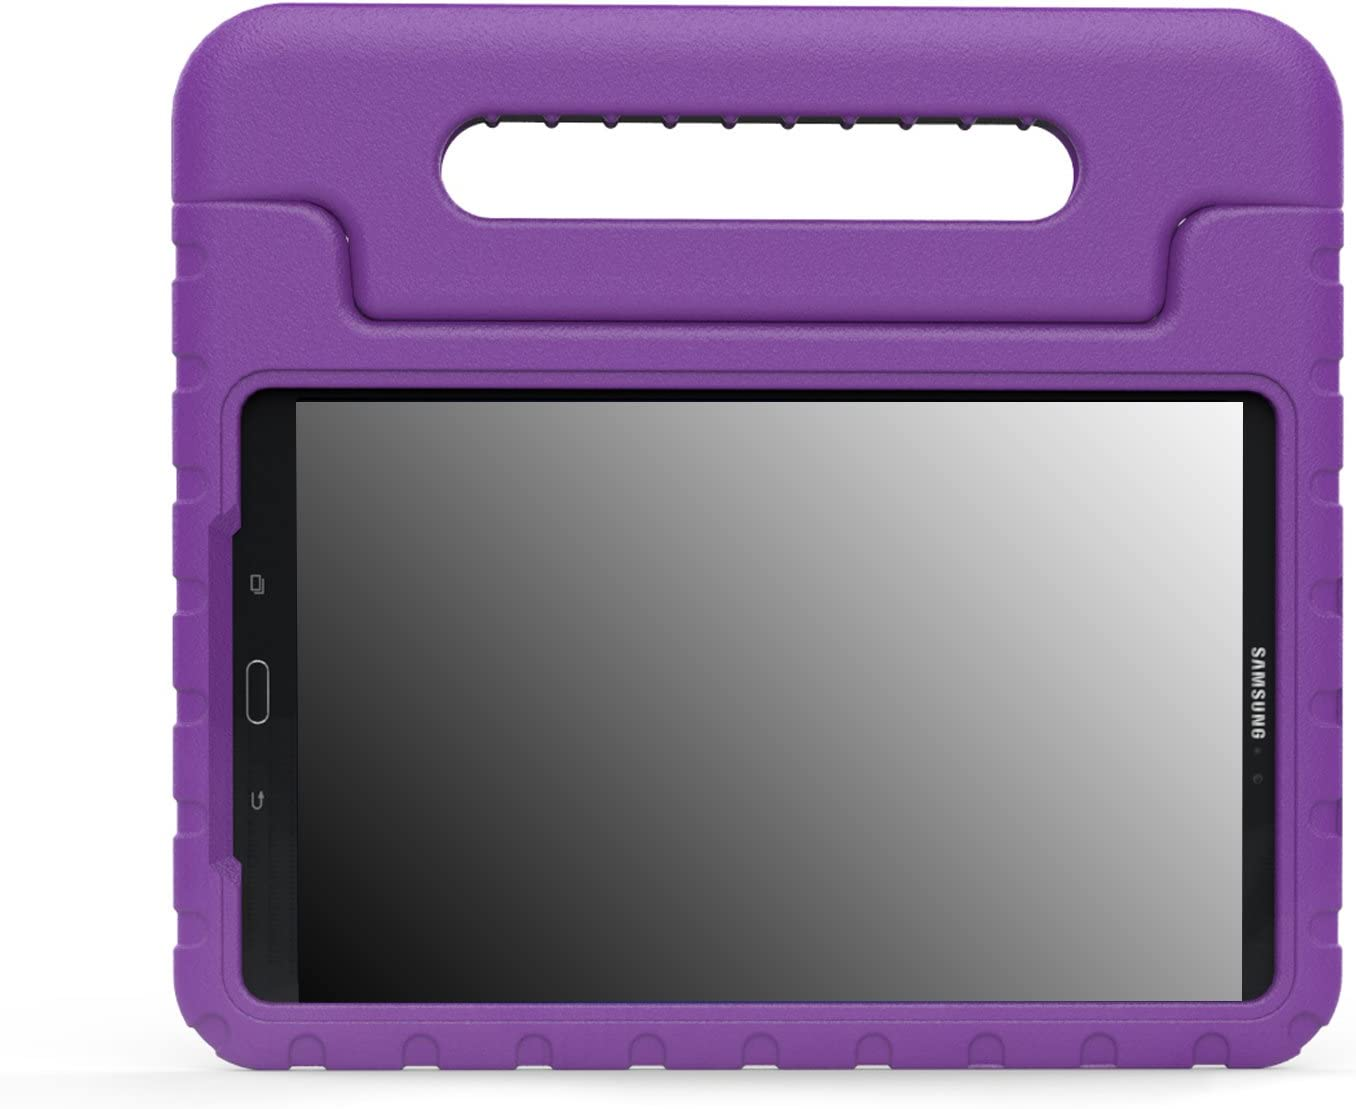 "MoKo Samsung Galaxy Tab A 10.1 Case - Kids Shock Proof Convertible Handle Light Weight Super Protective Stand Cover for Samsung Galaxy Tab A 10.1"" 2016 Tablet (SM-T580/SM-T585, No Pen Version), PURPLE"